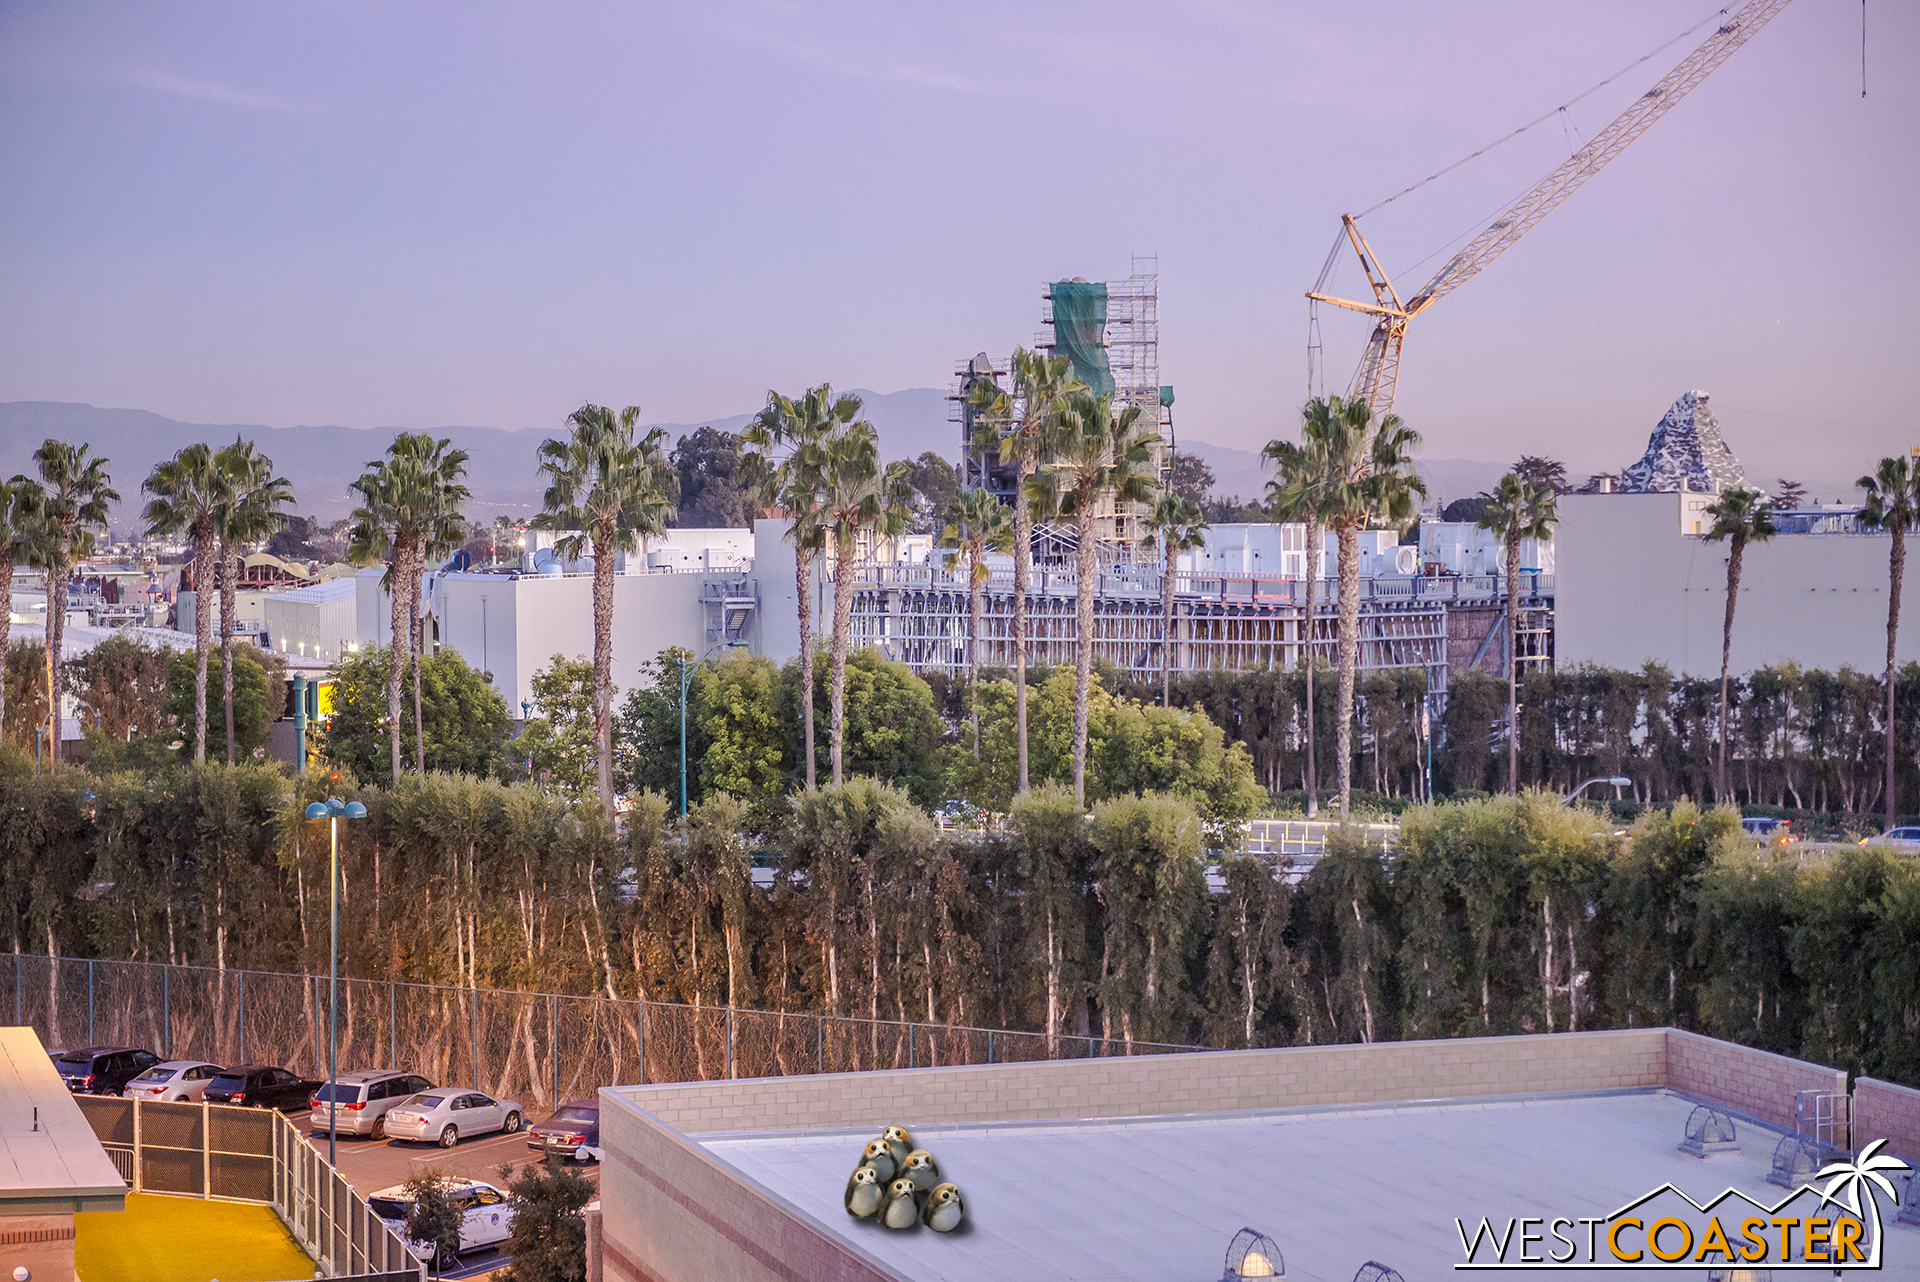 Public glimpses into Star Wars: Galaxy's Edge have definitely become limited as the walls go up and create a blank barrier into both the inside of the buildings and the land.